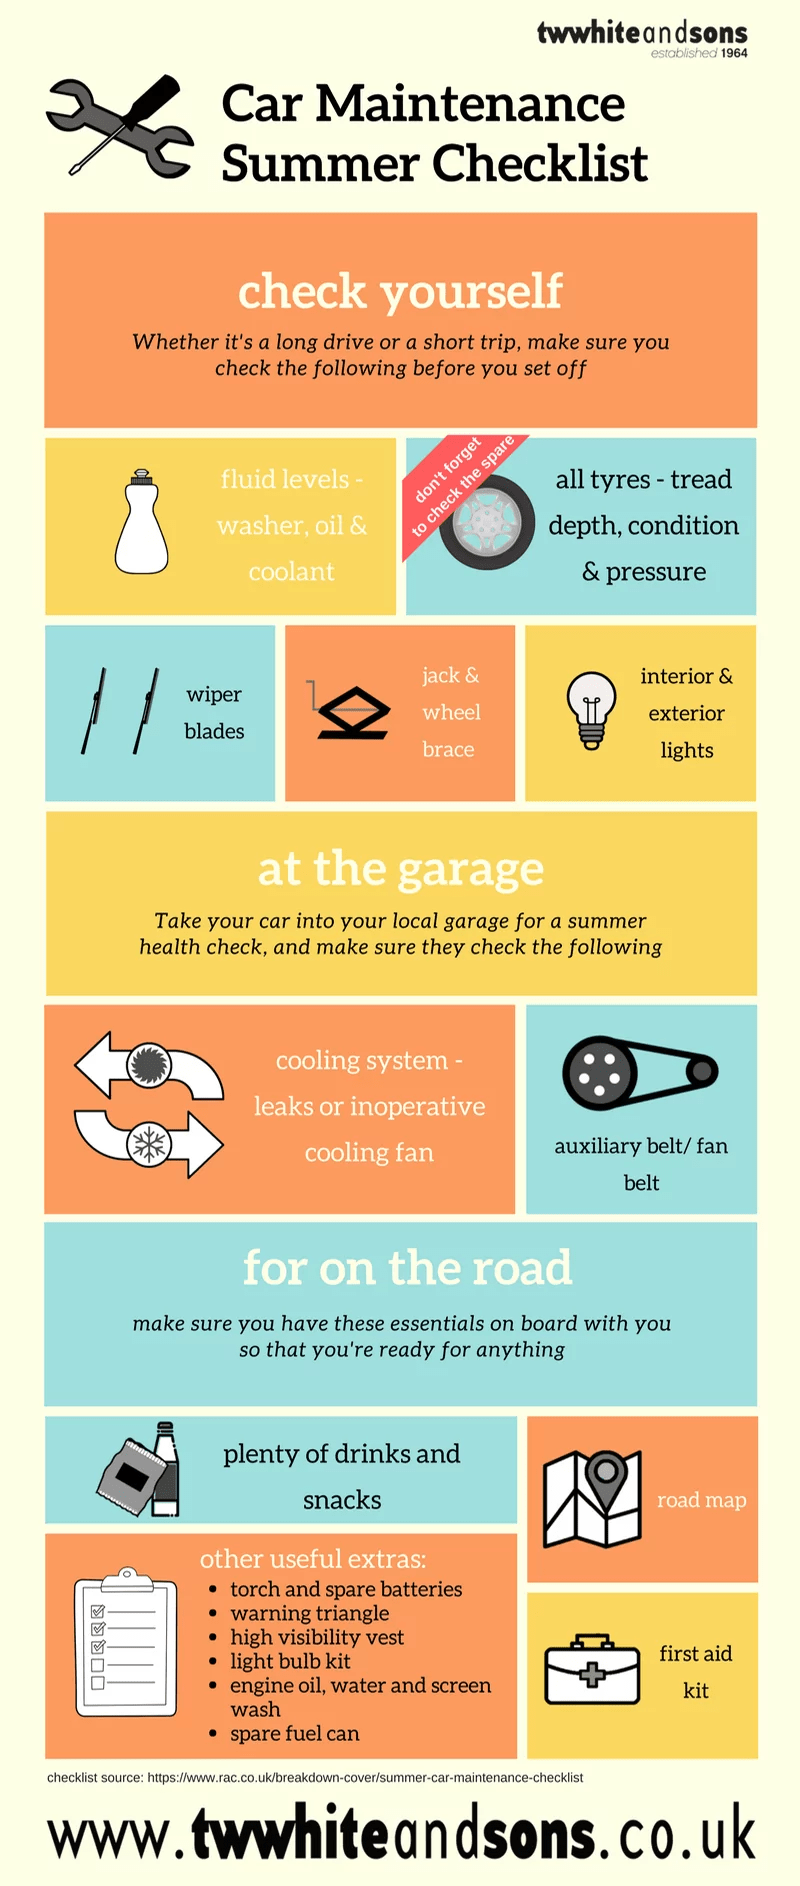 Car Maintenance Checklist >> Car Maintenance Summer Checklist Infographic T W White